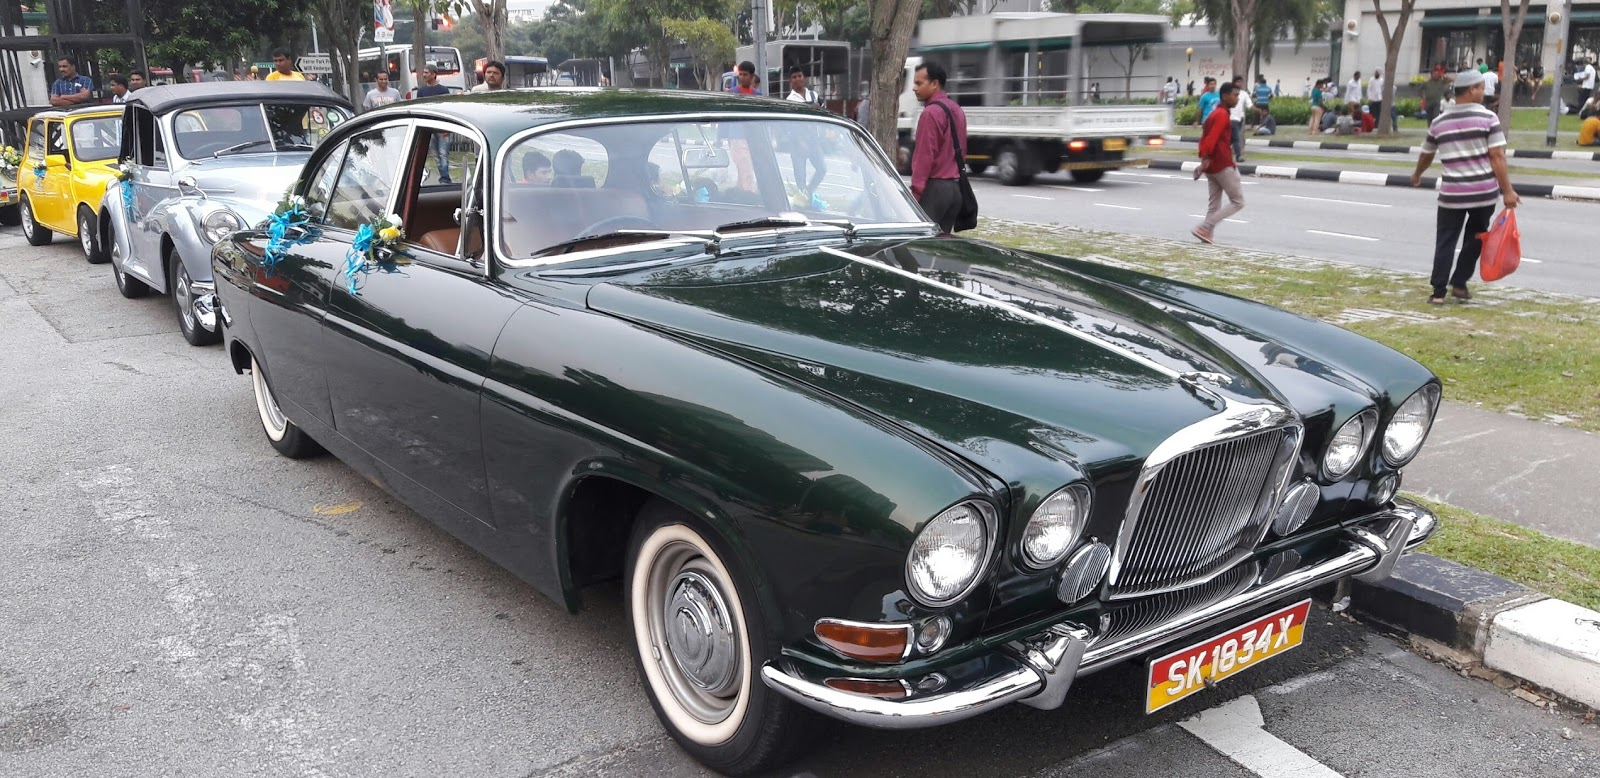 ... I Would Say That Old Jaguars Are U0027endangeredu0027: You Can Find Them In The  Wild But You Need Luck And Skill To Find One. However, This 1963 Jaguar  Mark ...